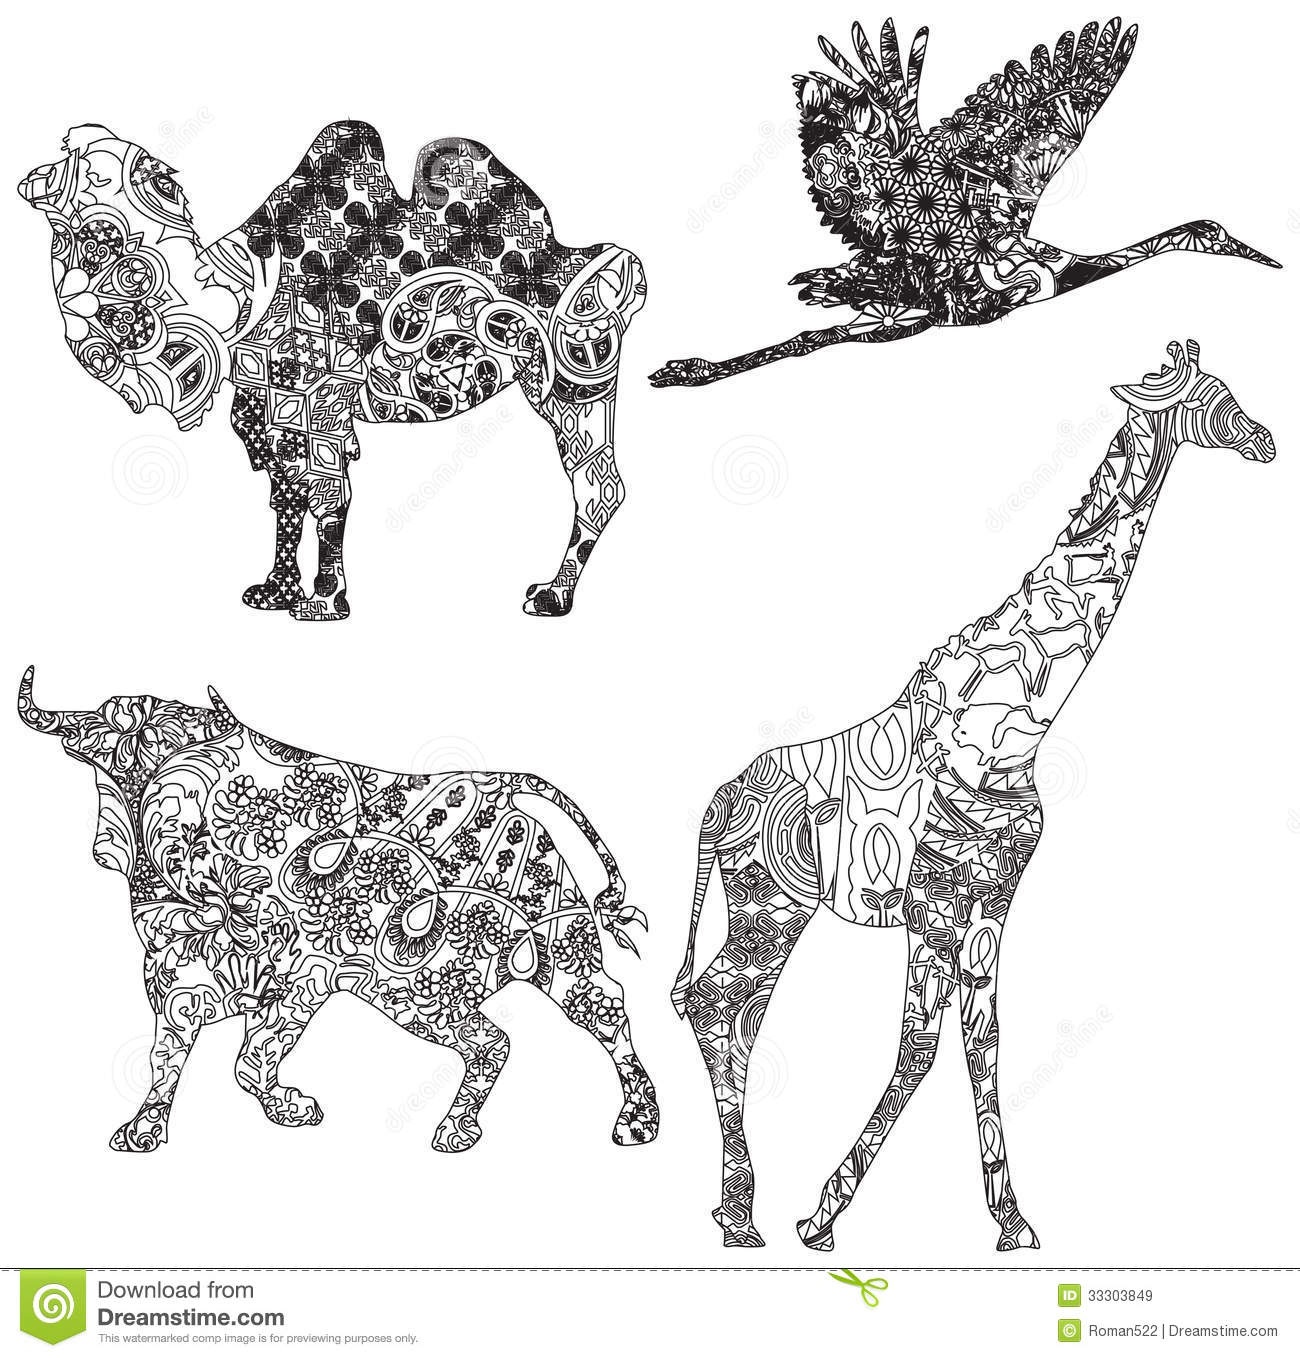 Animal ornaments - Set Of Animals In The Ethnic Ornament